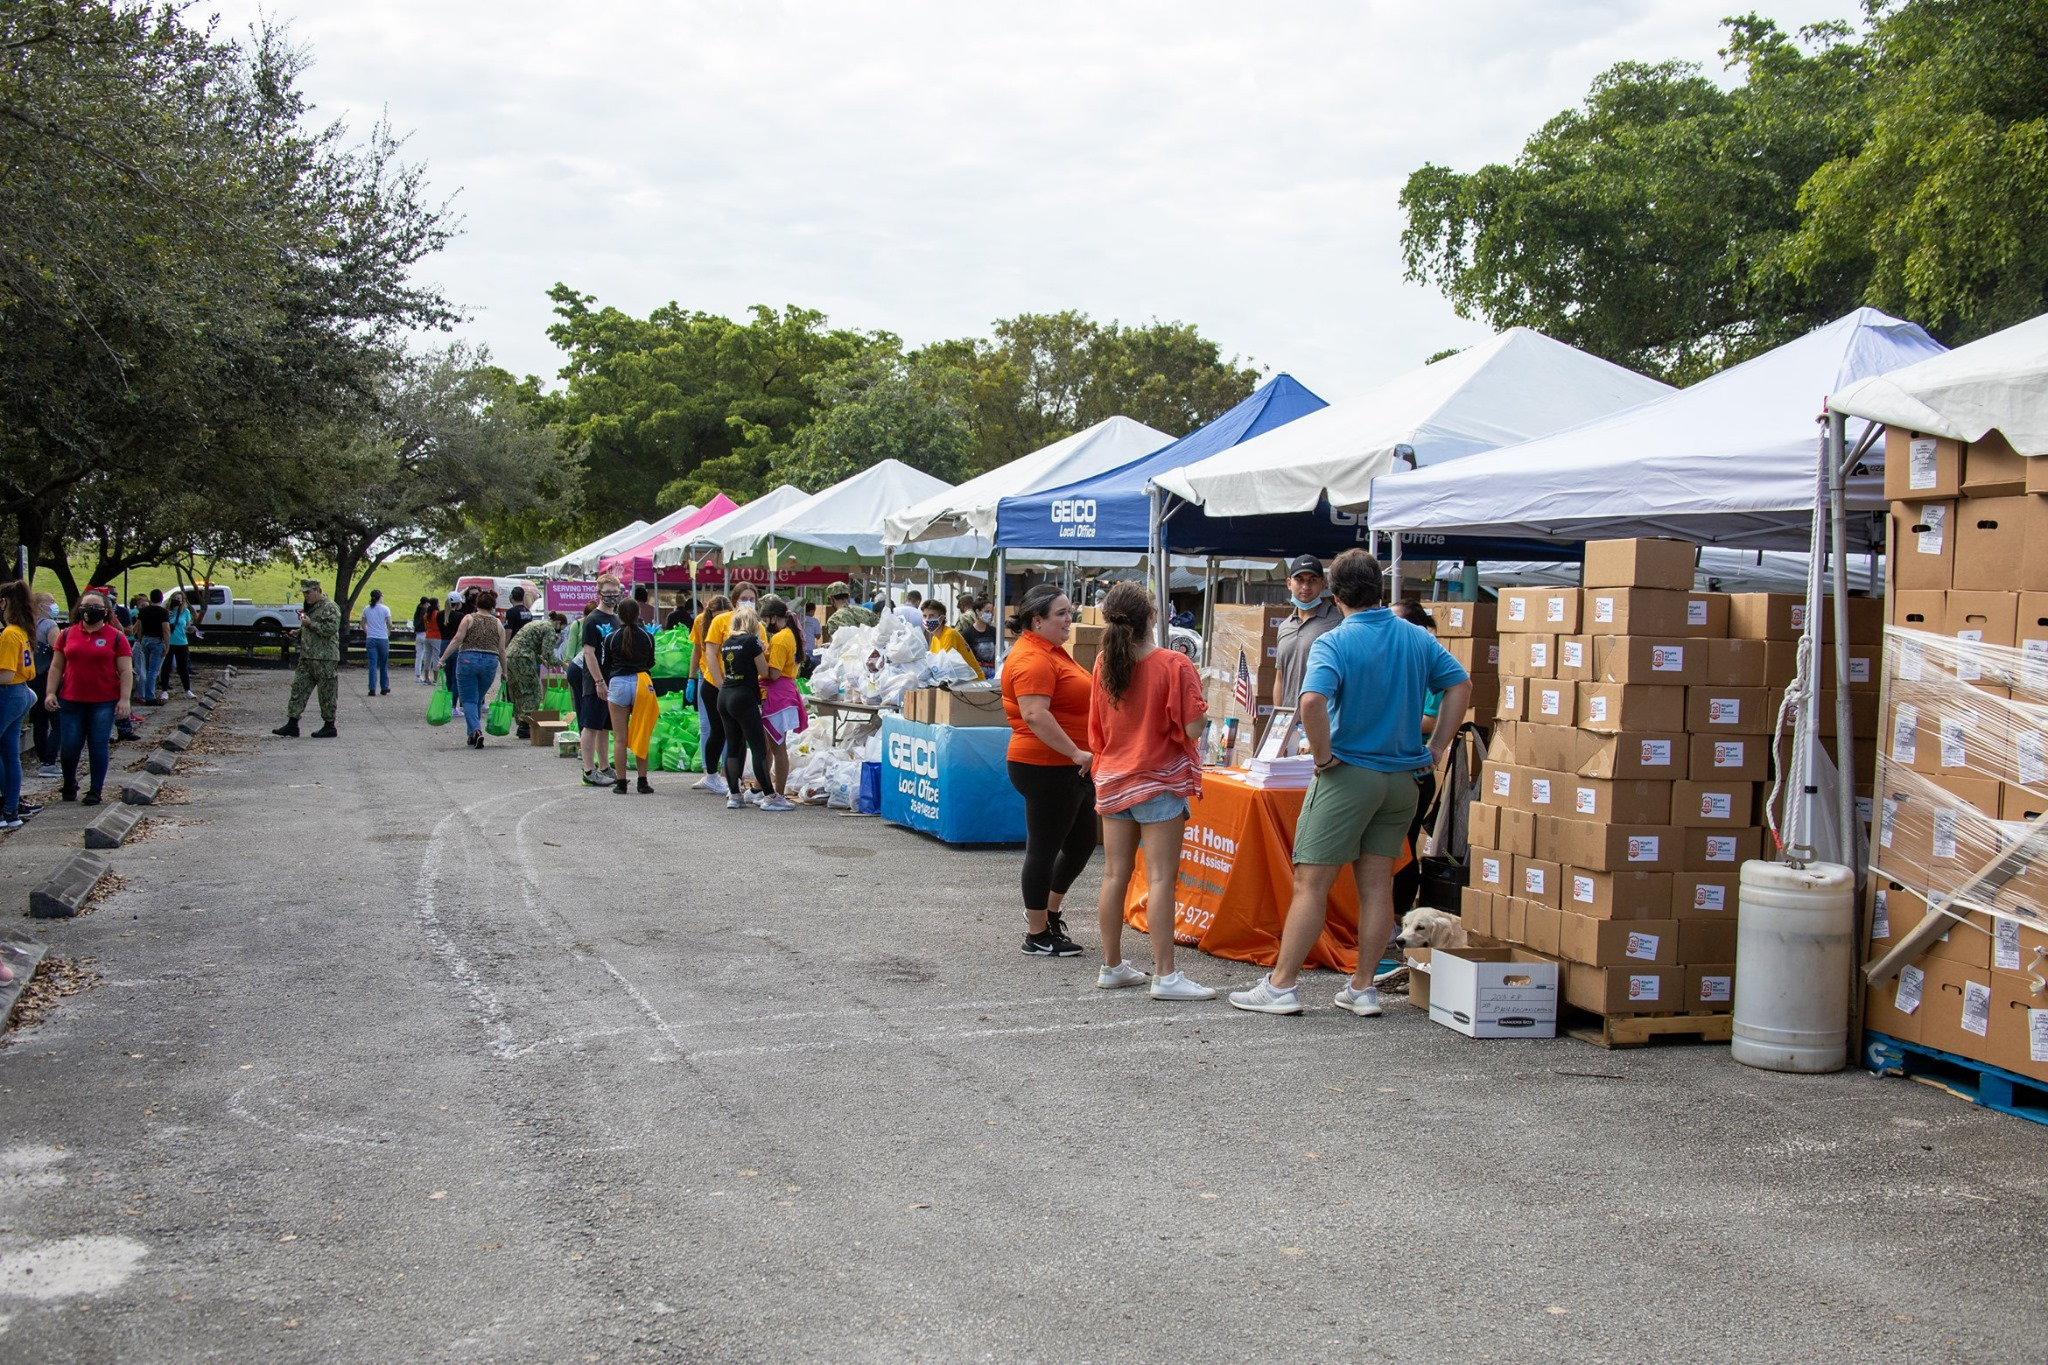 <b>2020 Community Salute to Our Veterans</b><br> On October 24th, 2020, a team of our volunteers assisted with the collection and distribution of community 'care packages' for our military veterans, including many seniors who have served for this great country. It was an honor to help.